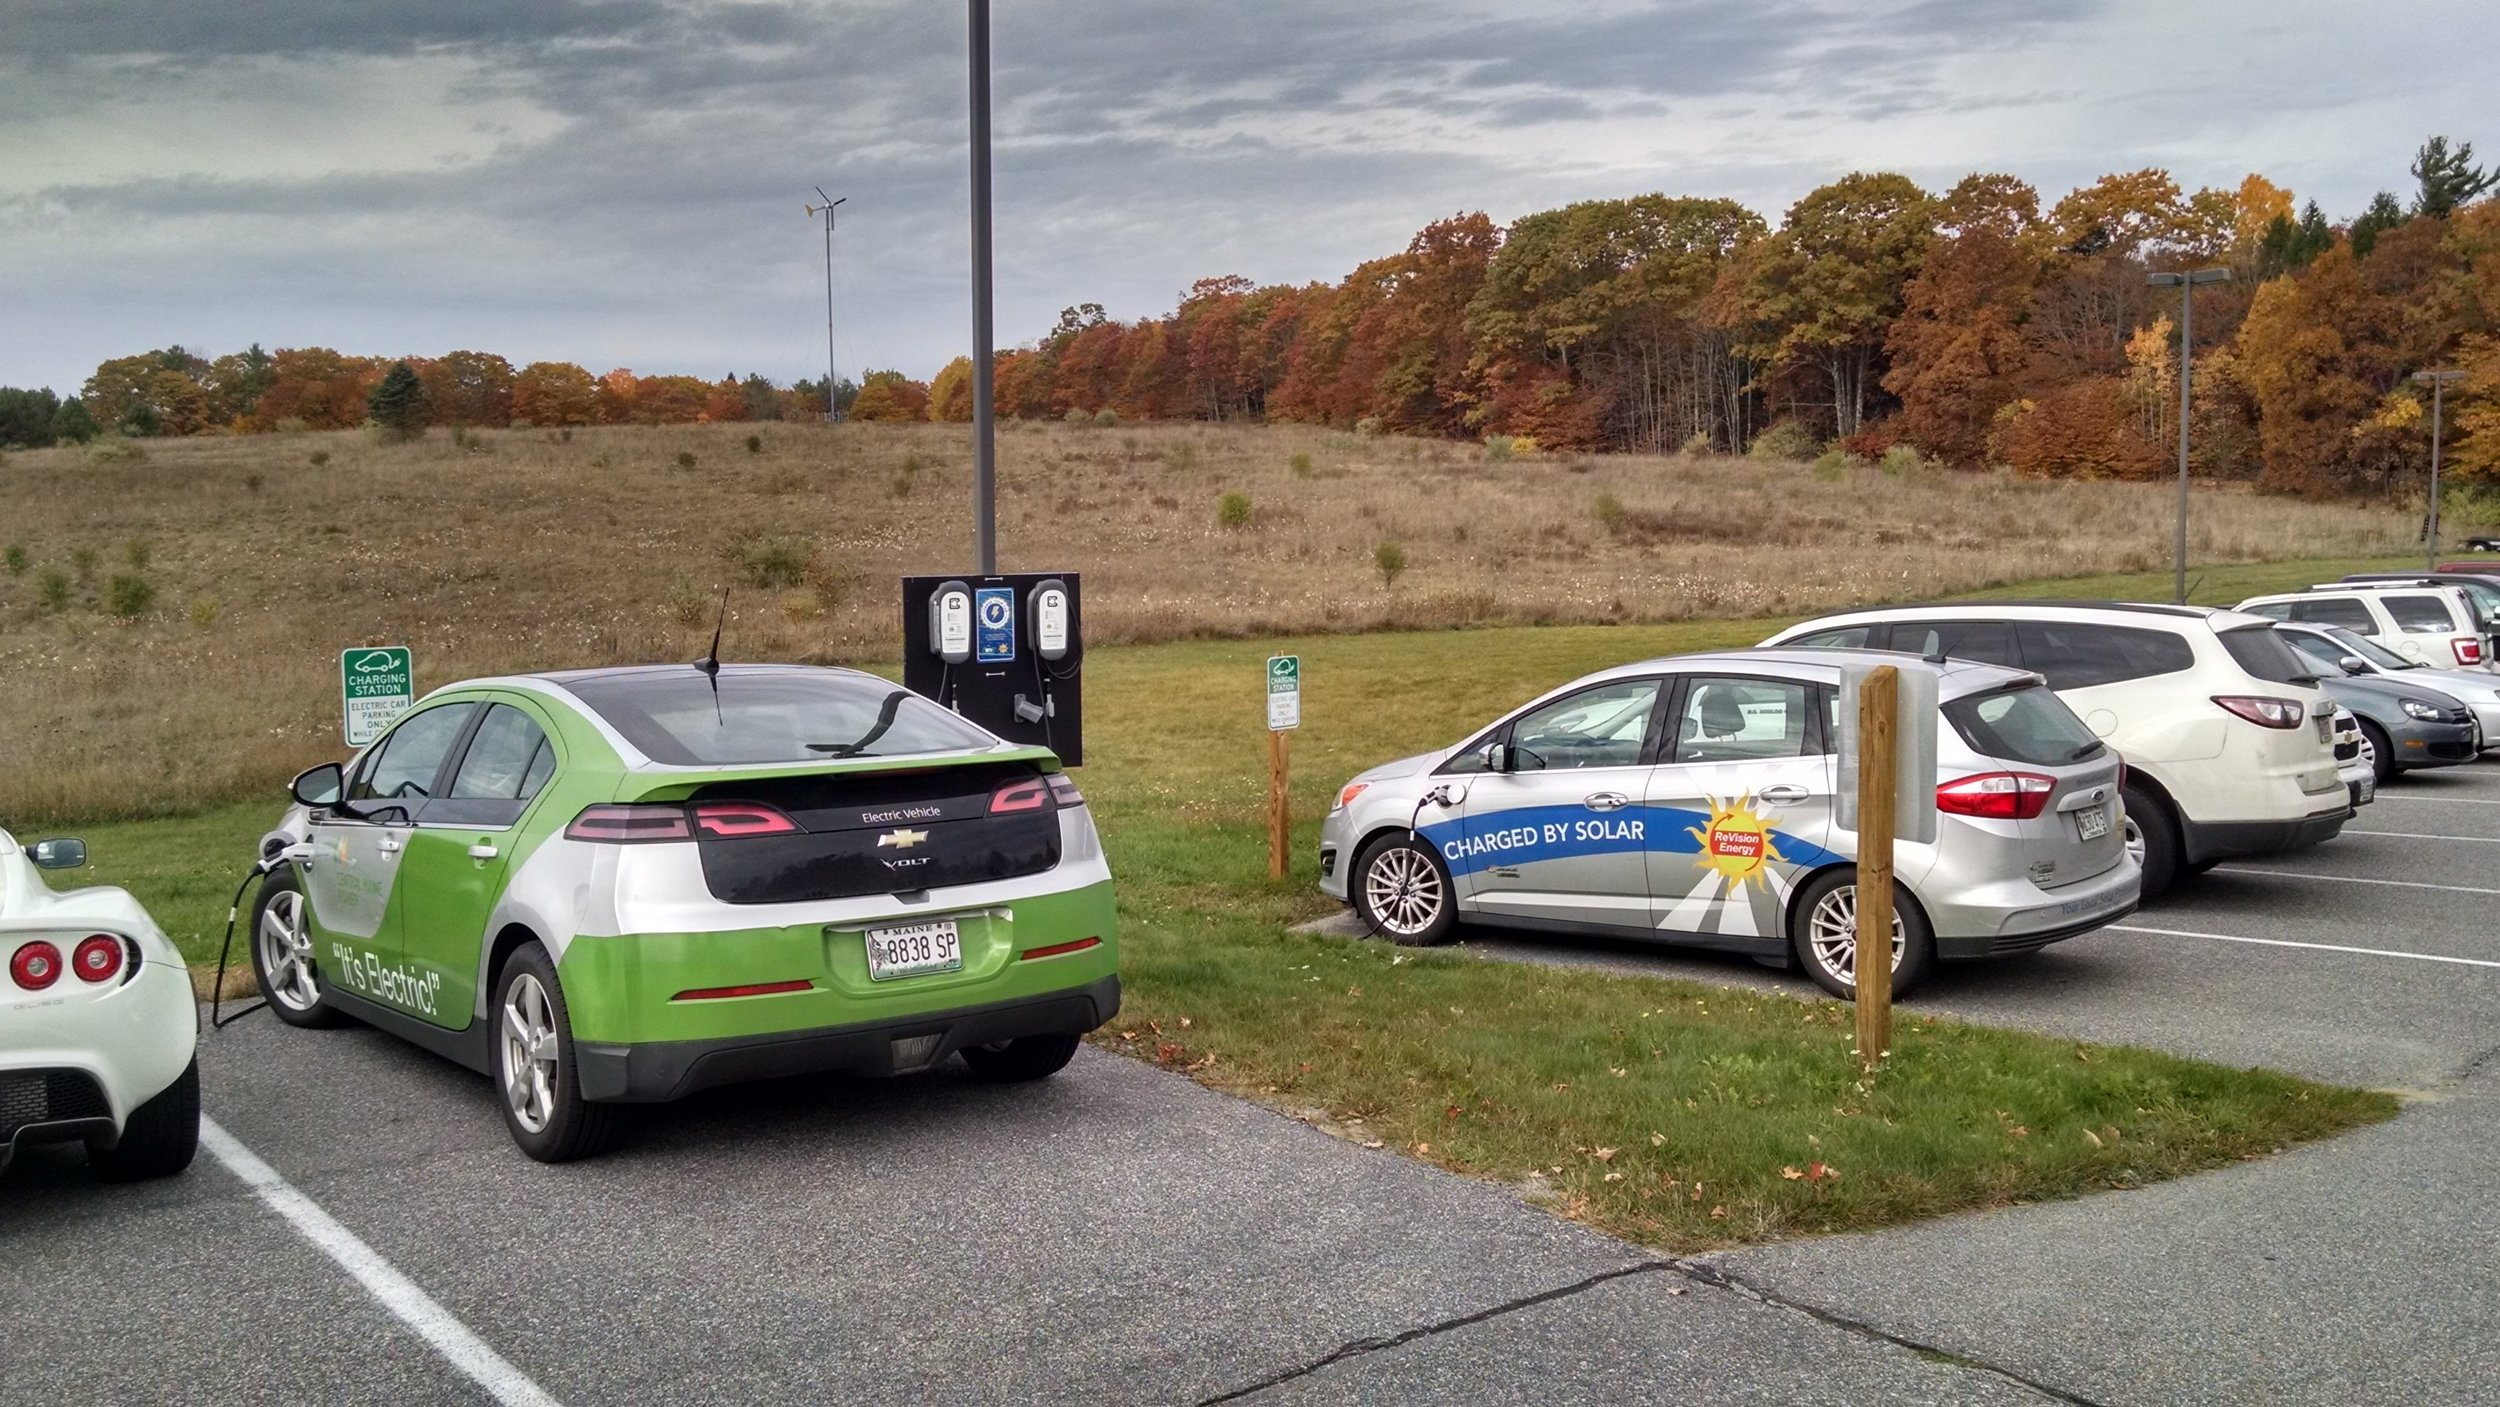 Maple Hill Farm Inn and Conference Center in Hallowell offers four electric vehicle chargers, including two Level 2 and two Tesla. They are free to overnight guests and those attending an event at the inn. Half of the center's electricity comes from on-site wind and solar PV system.